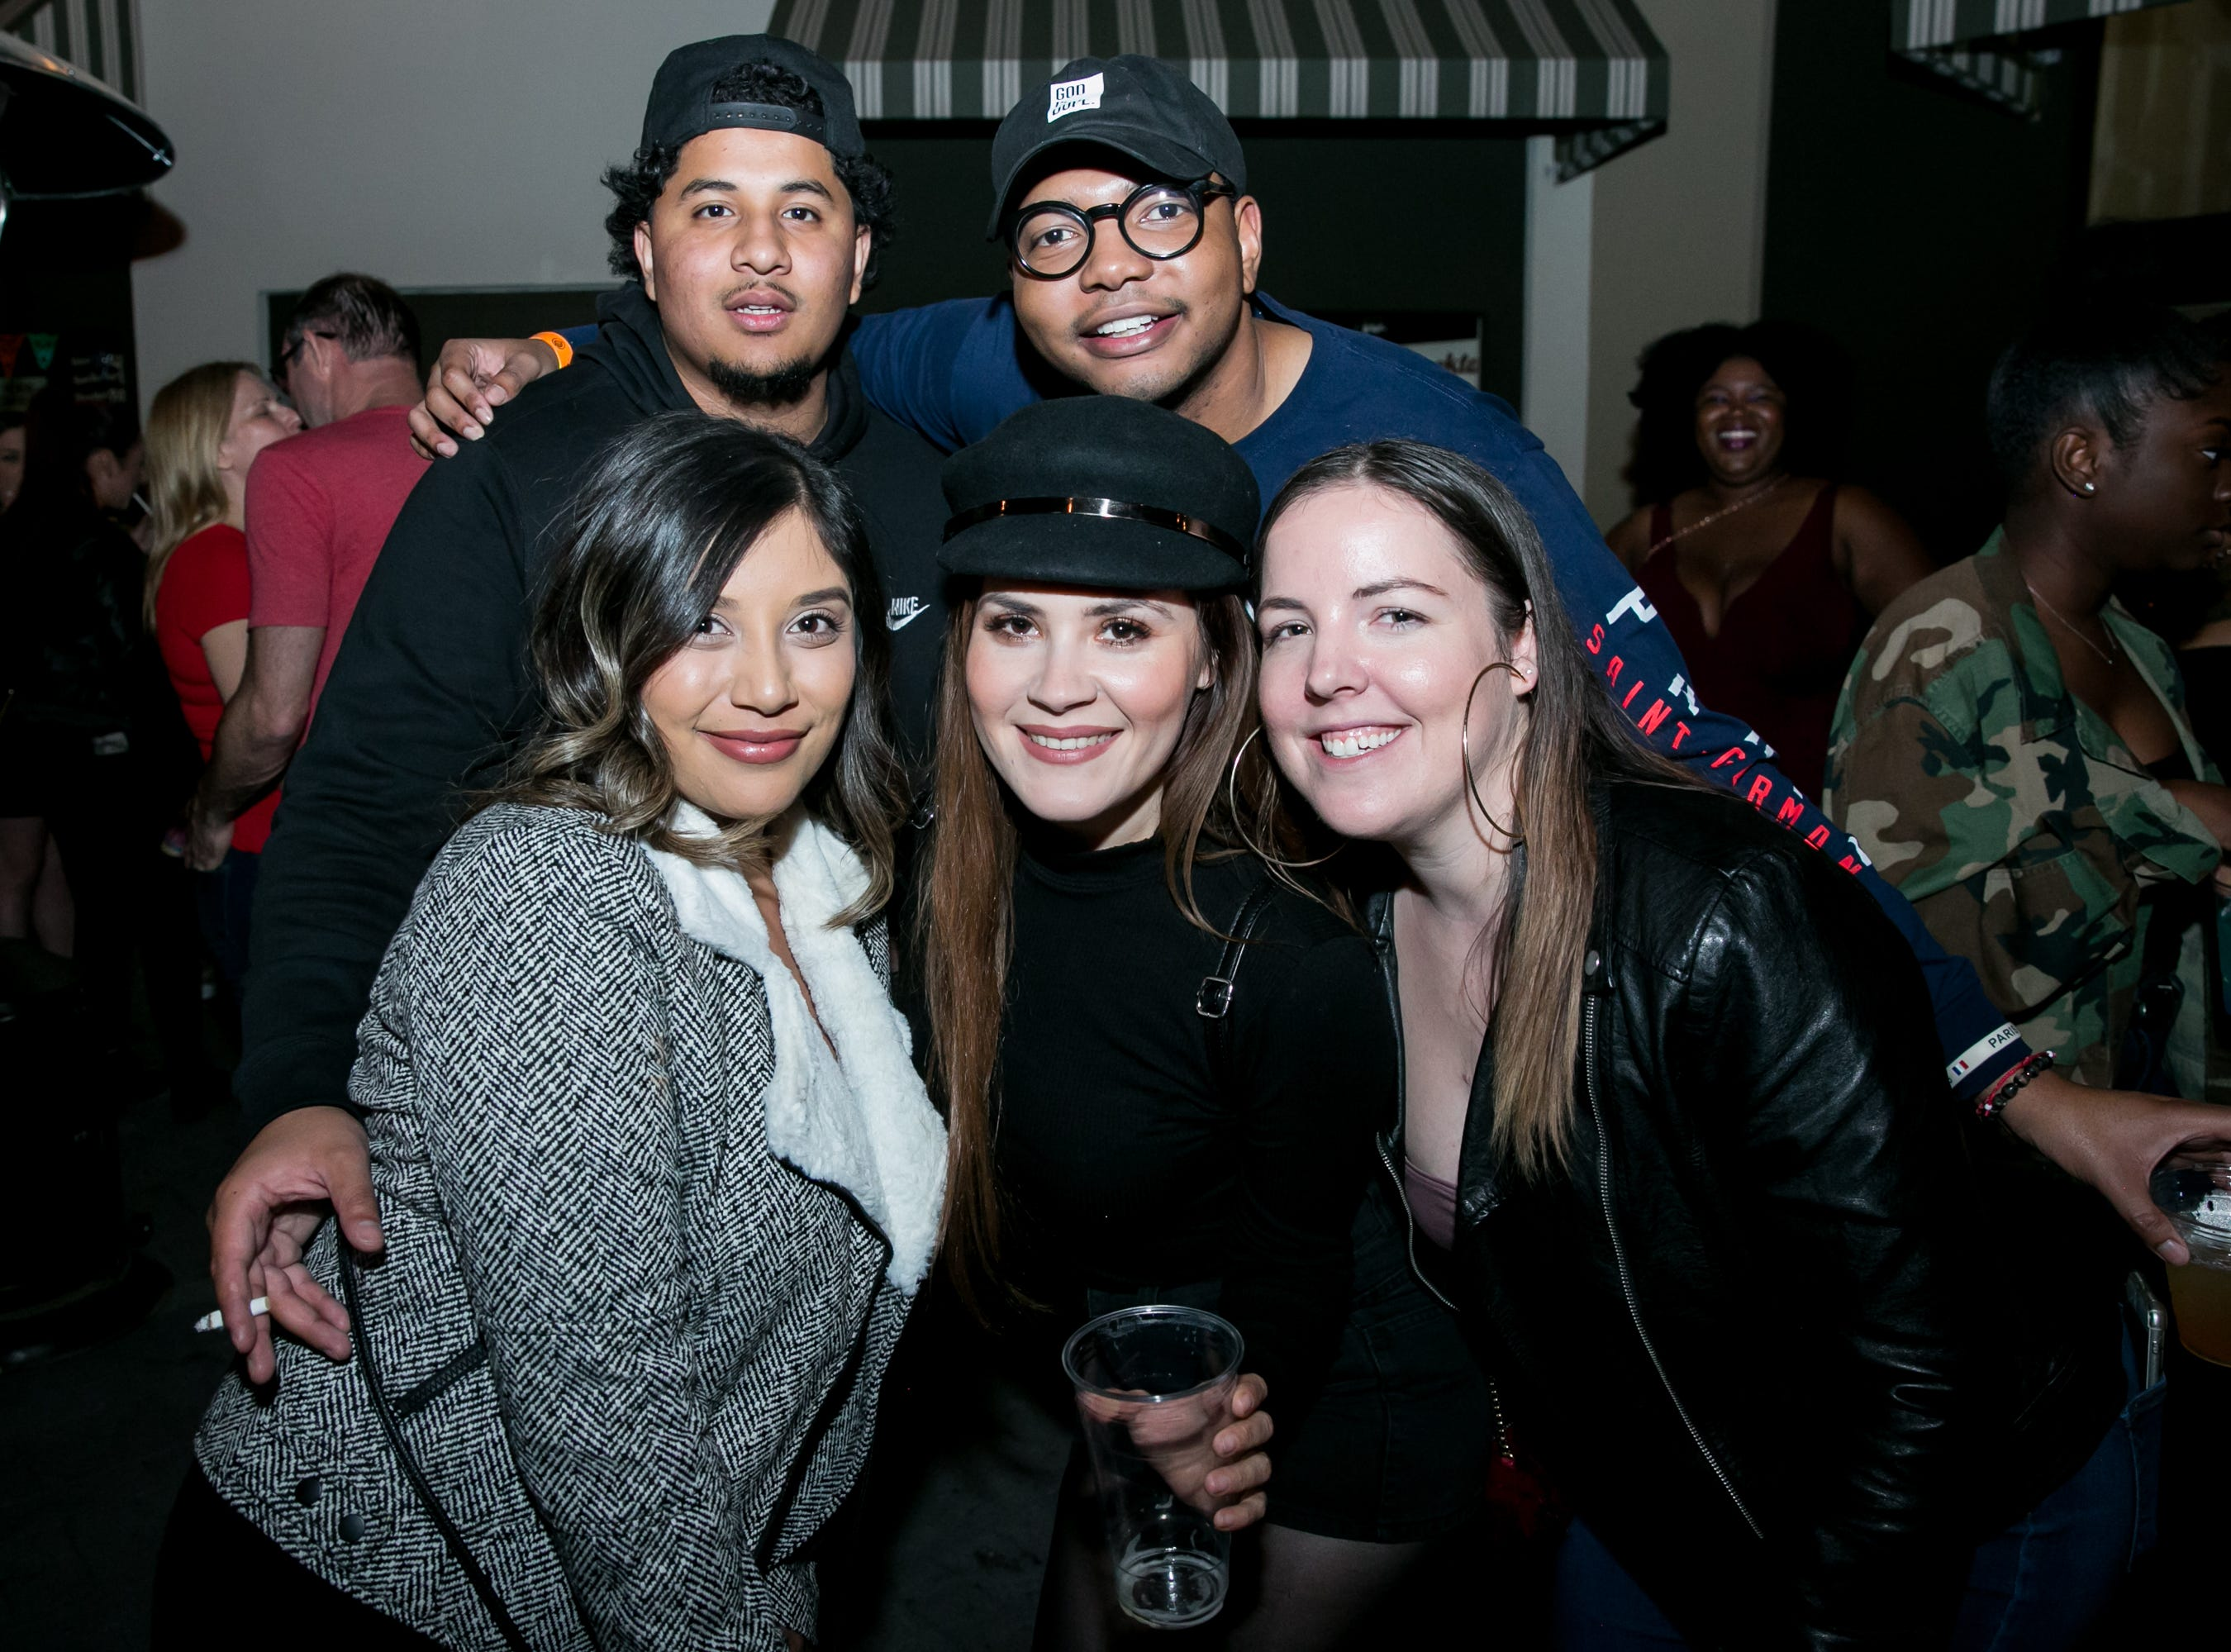 This group showed off some great hats during Old School - 90's Hip Hop Dance Party at The Van Buren on Friday, November 30, 2018.